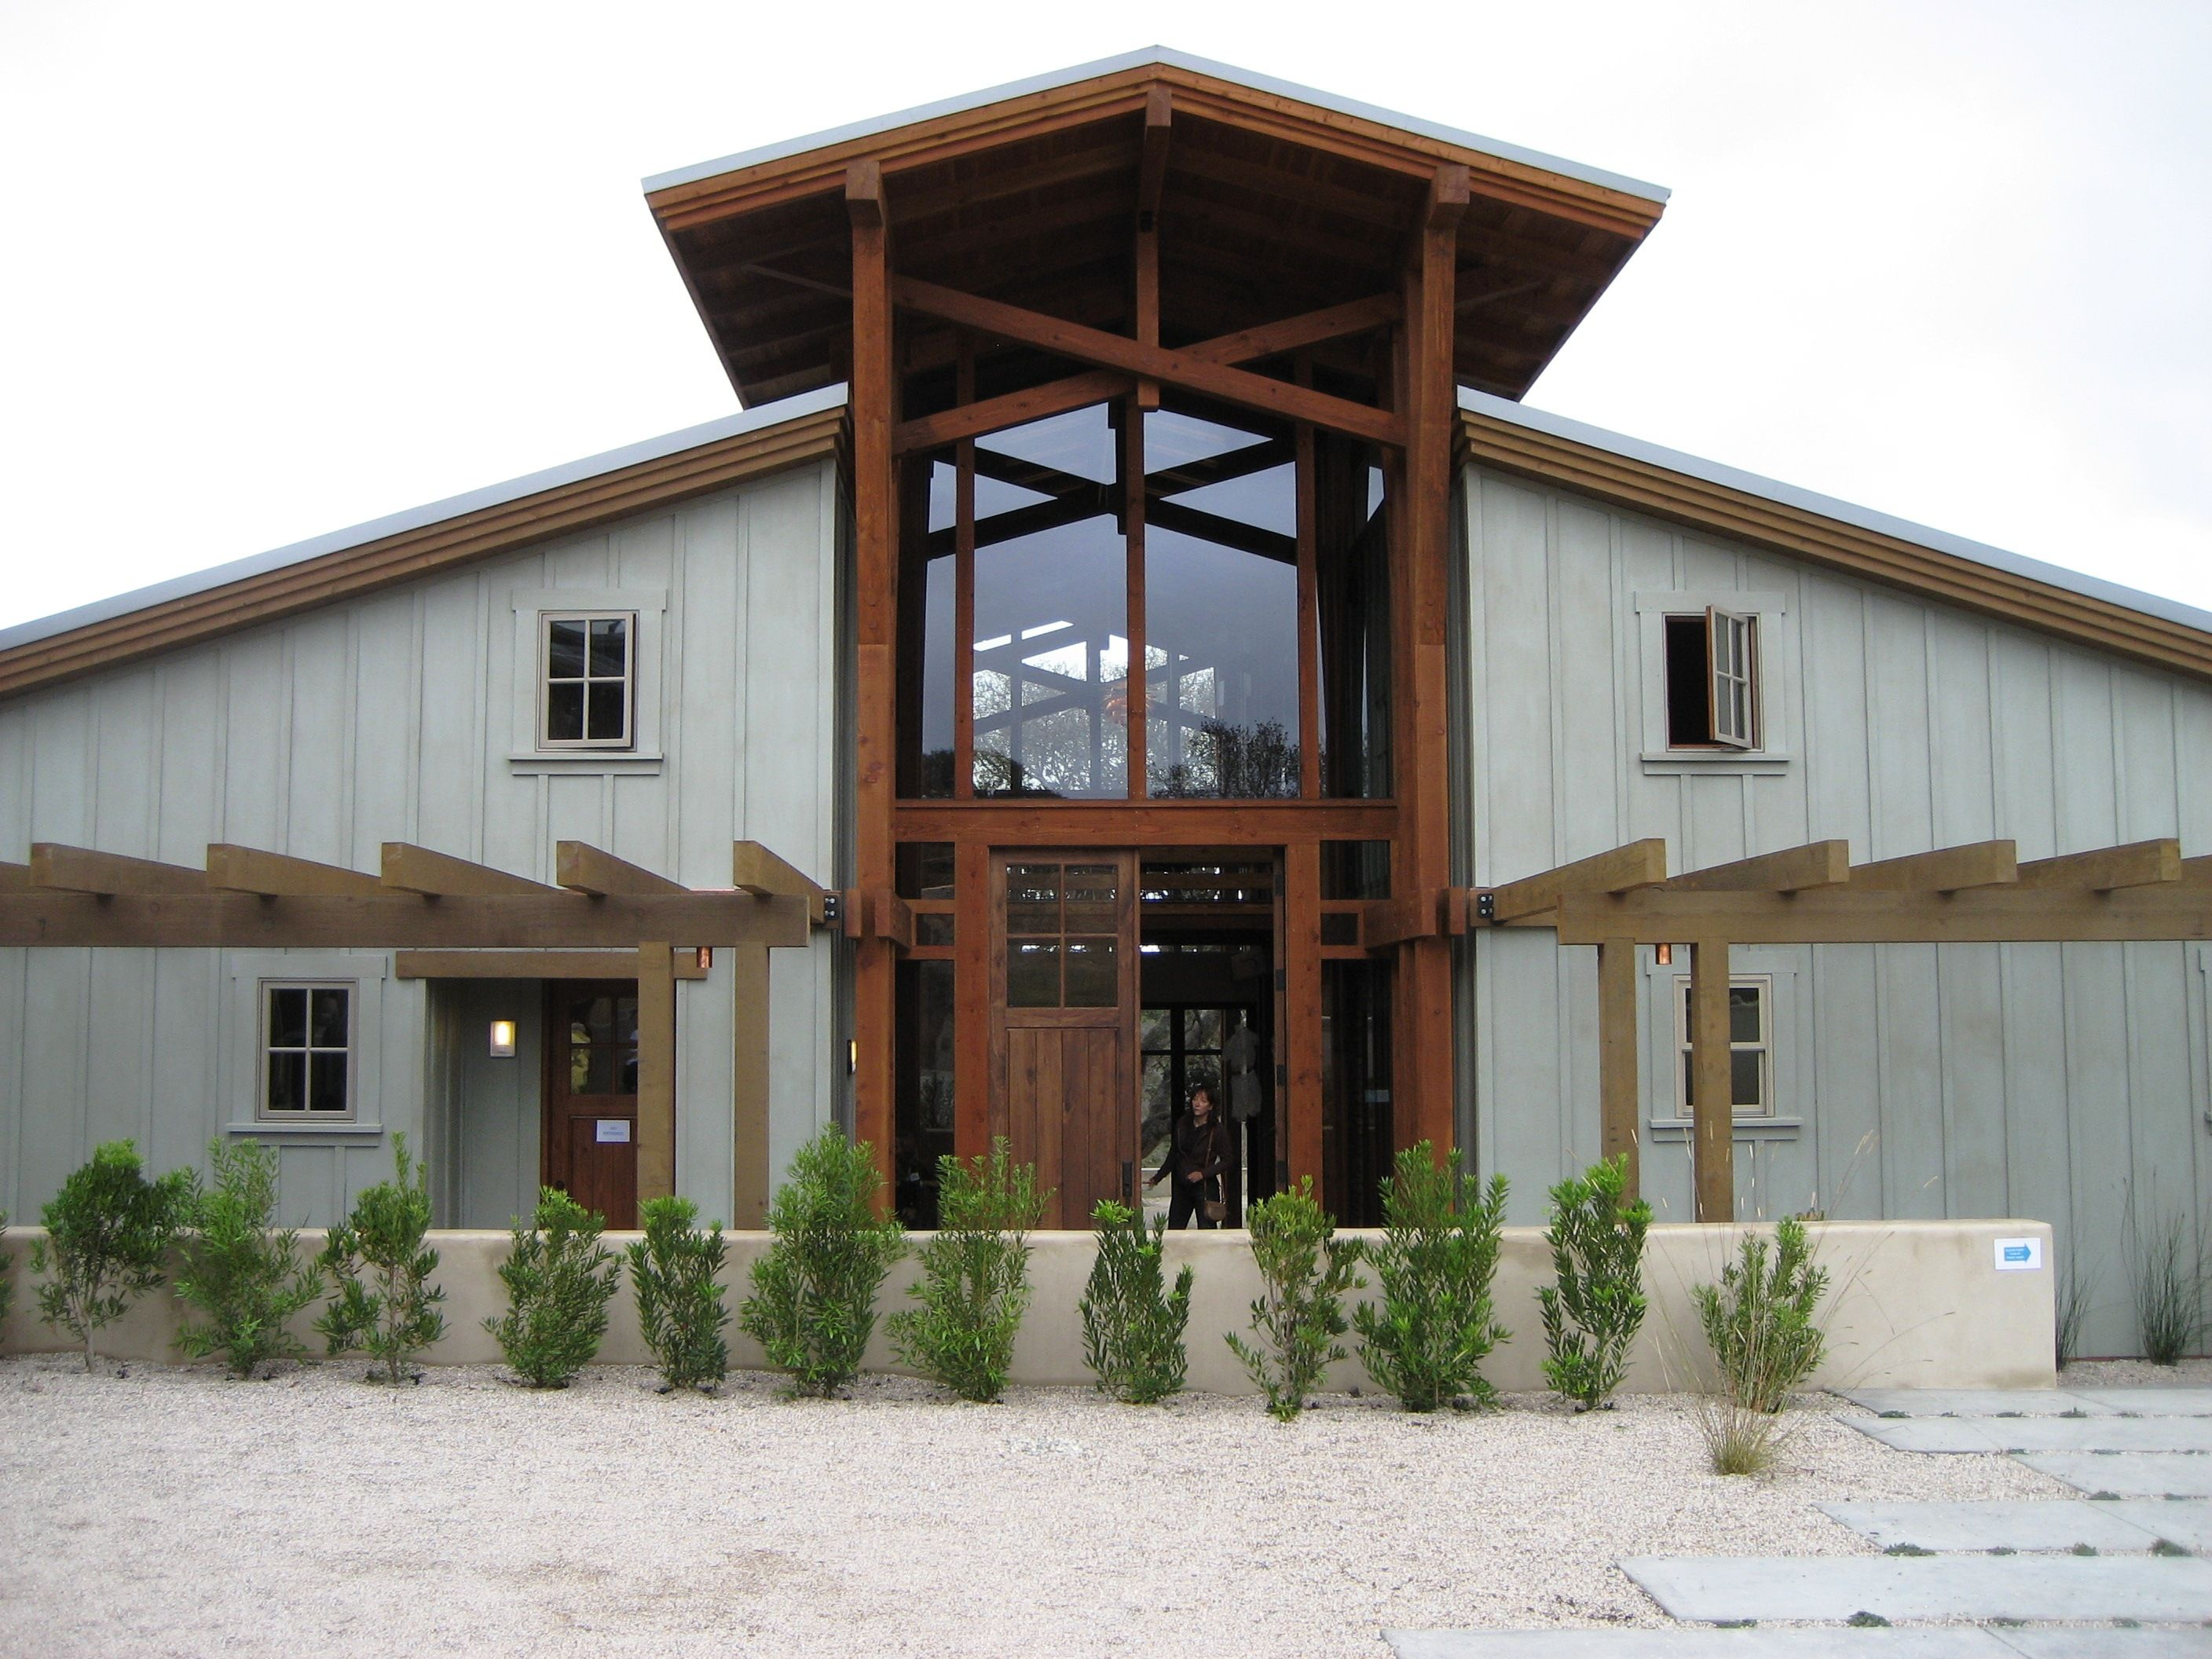 Arena barn and apartment all under one roof this could for Barn style house designs